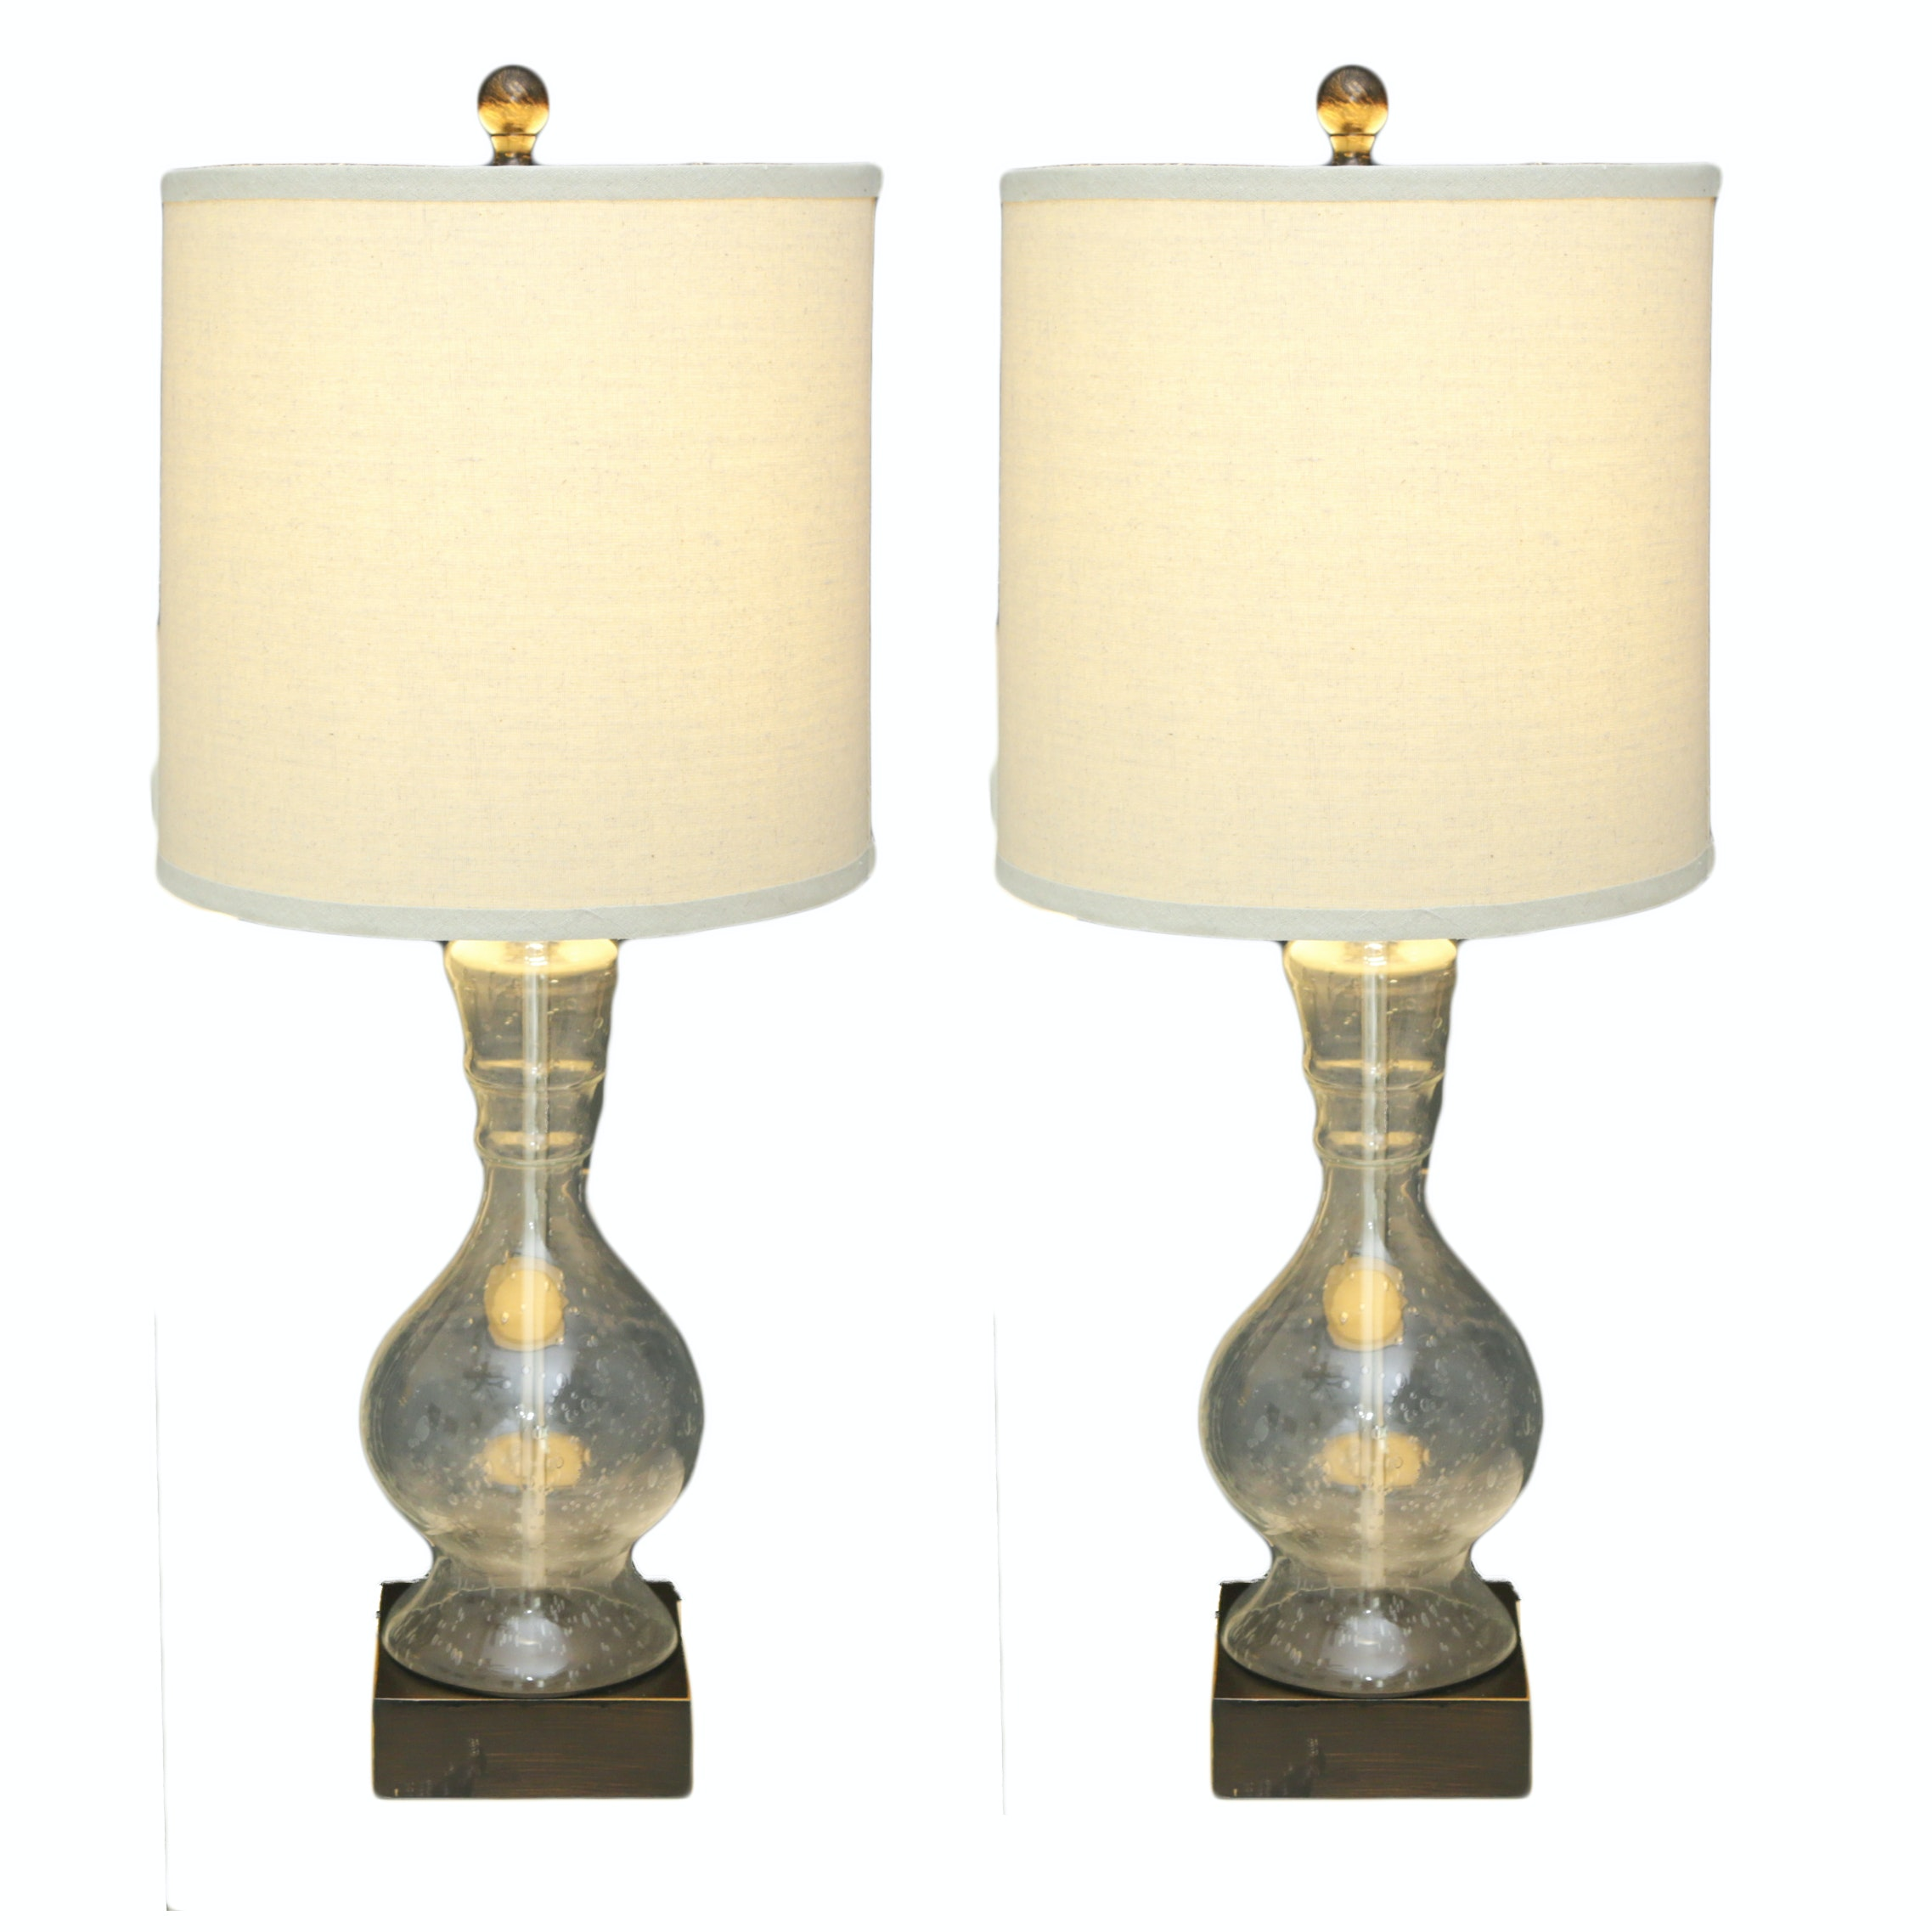 Pair of Contemporary Glass and Wood Table Lamps